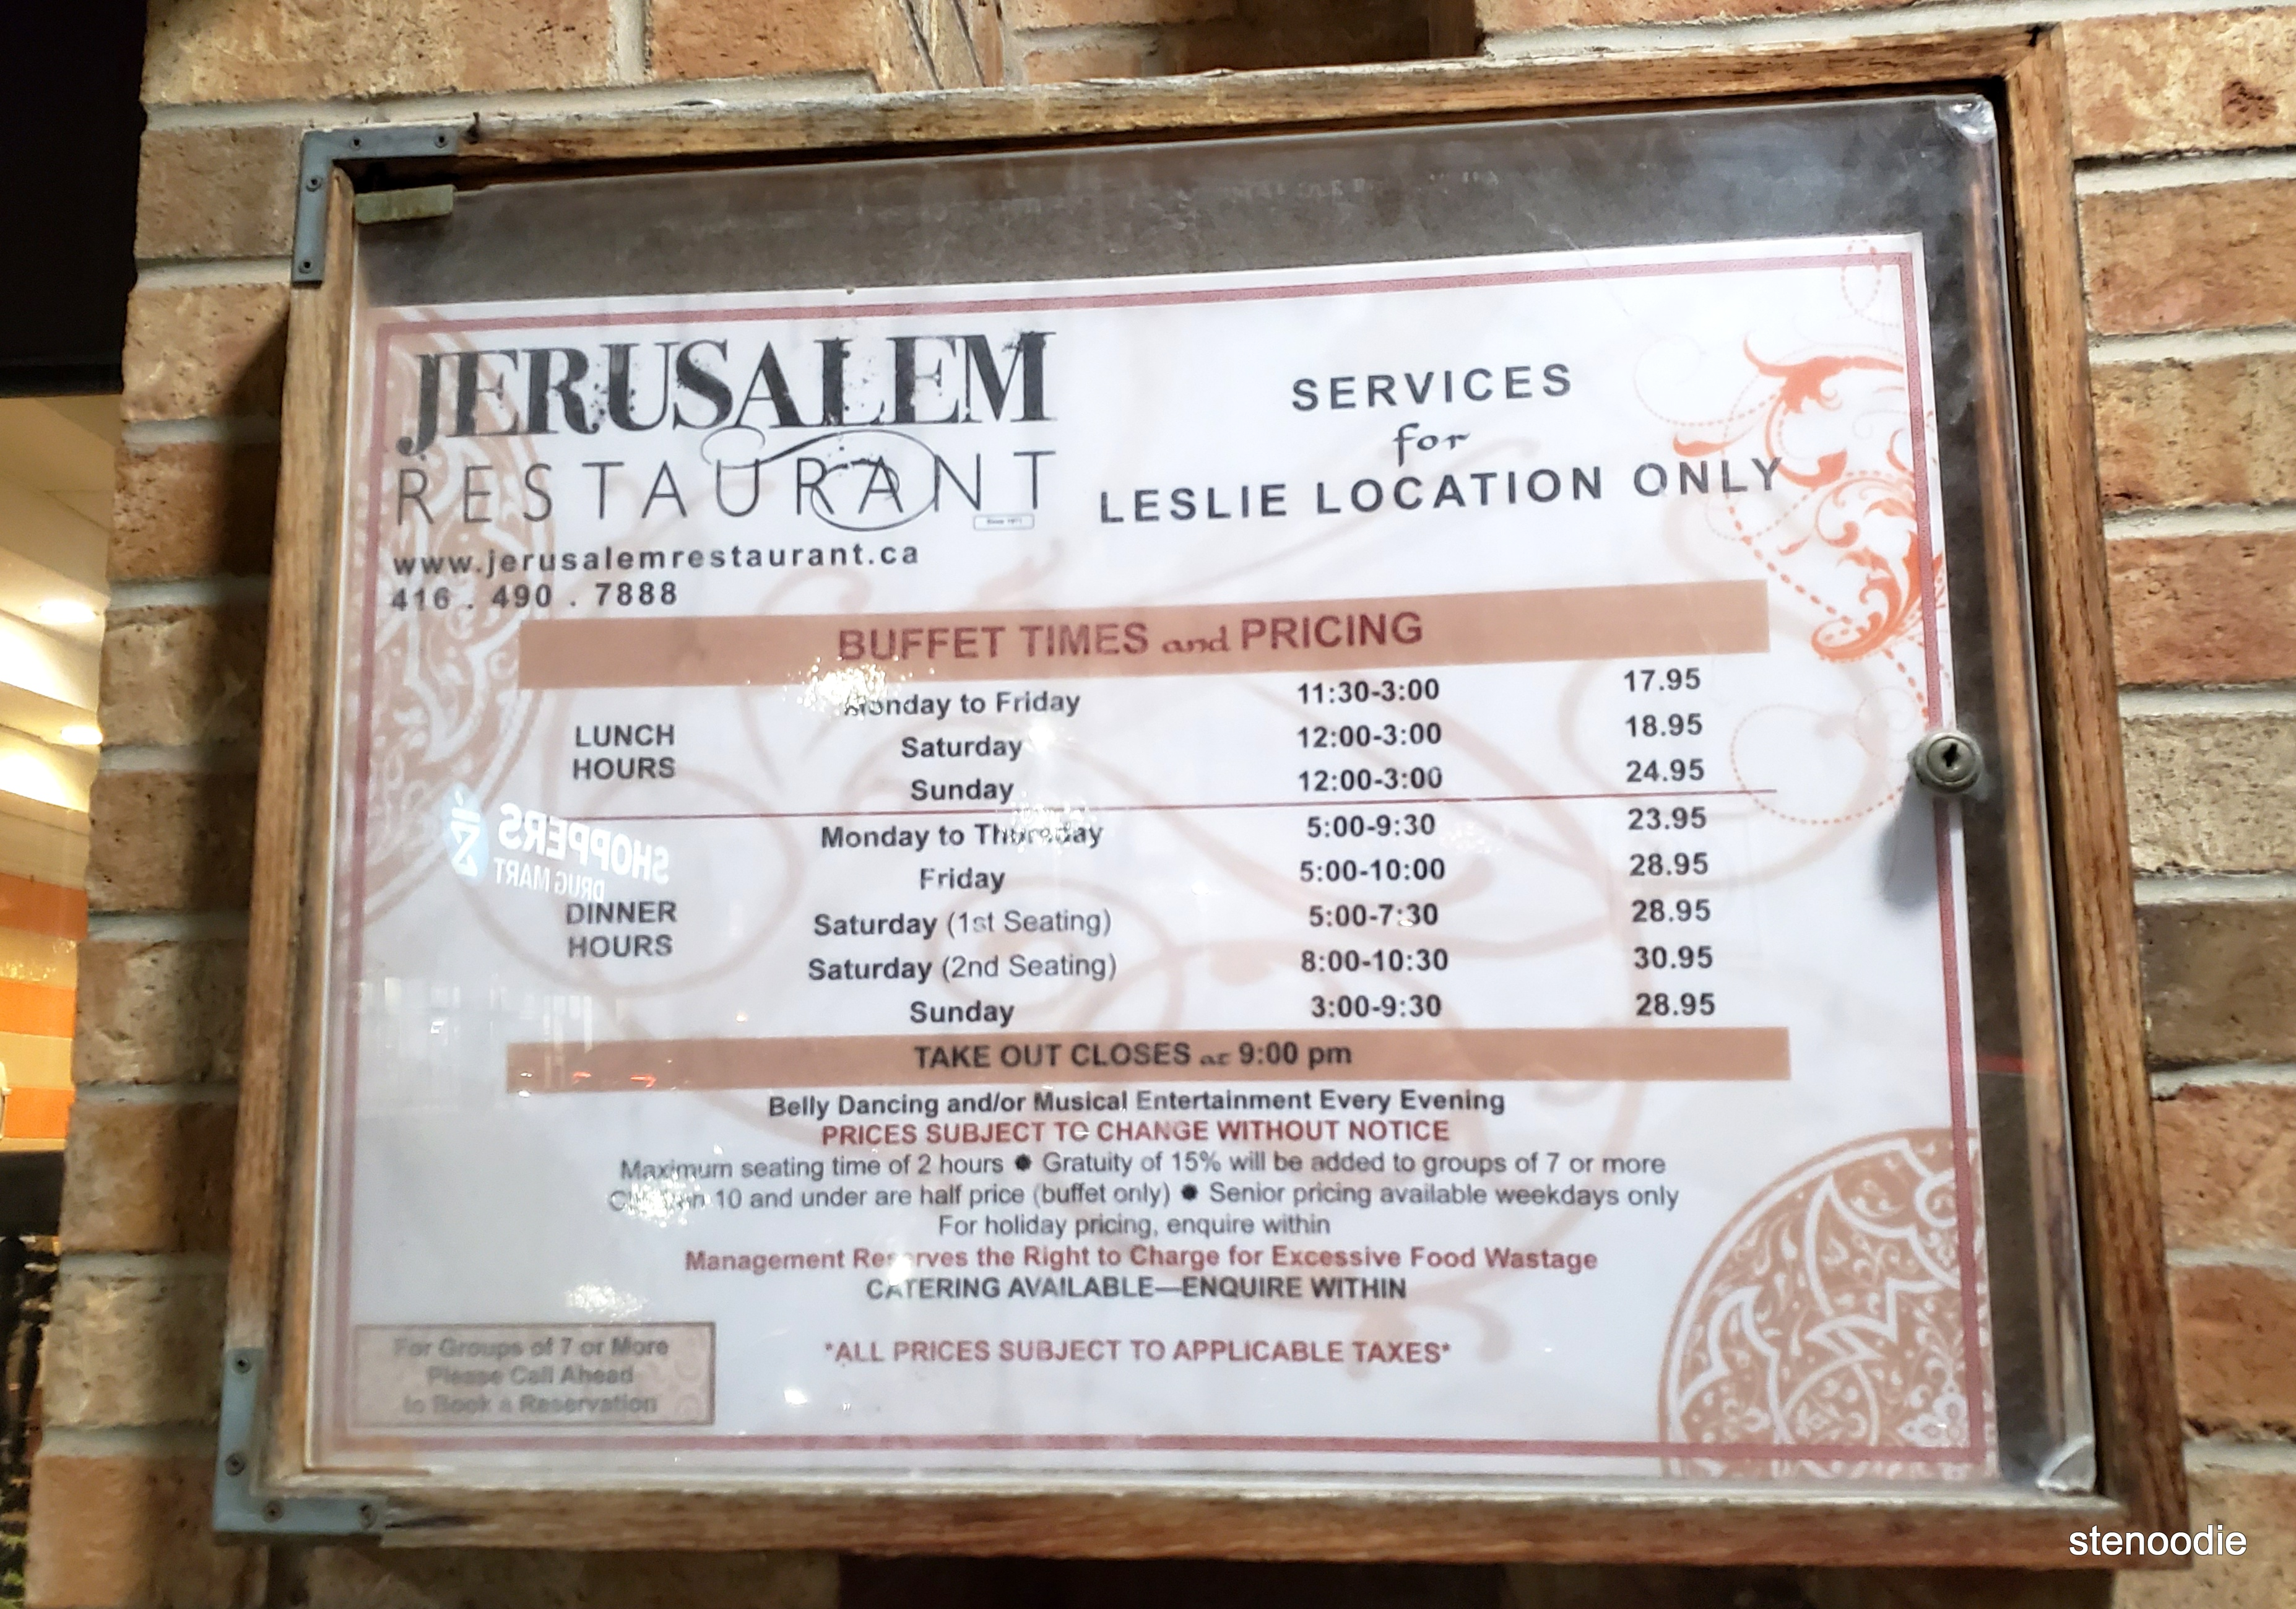 Jerusalem Restaurant Leslie buffet times and pricing